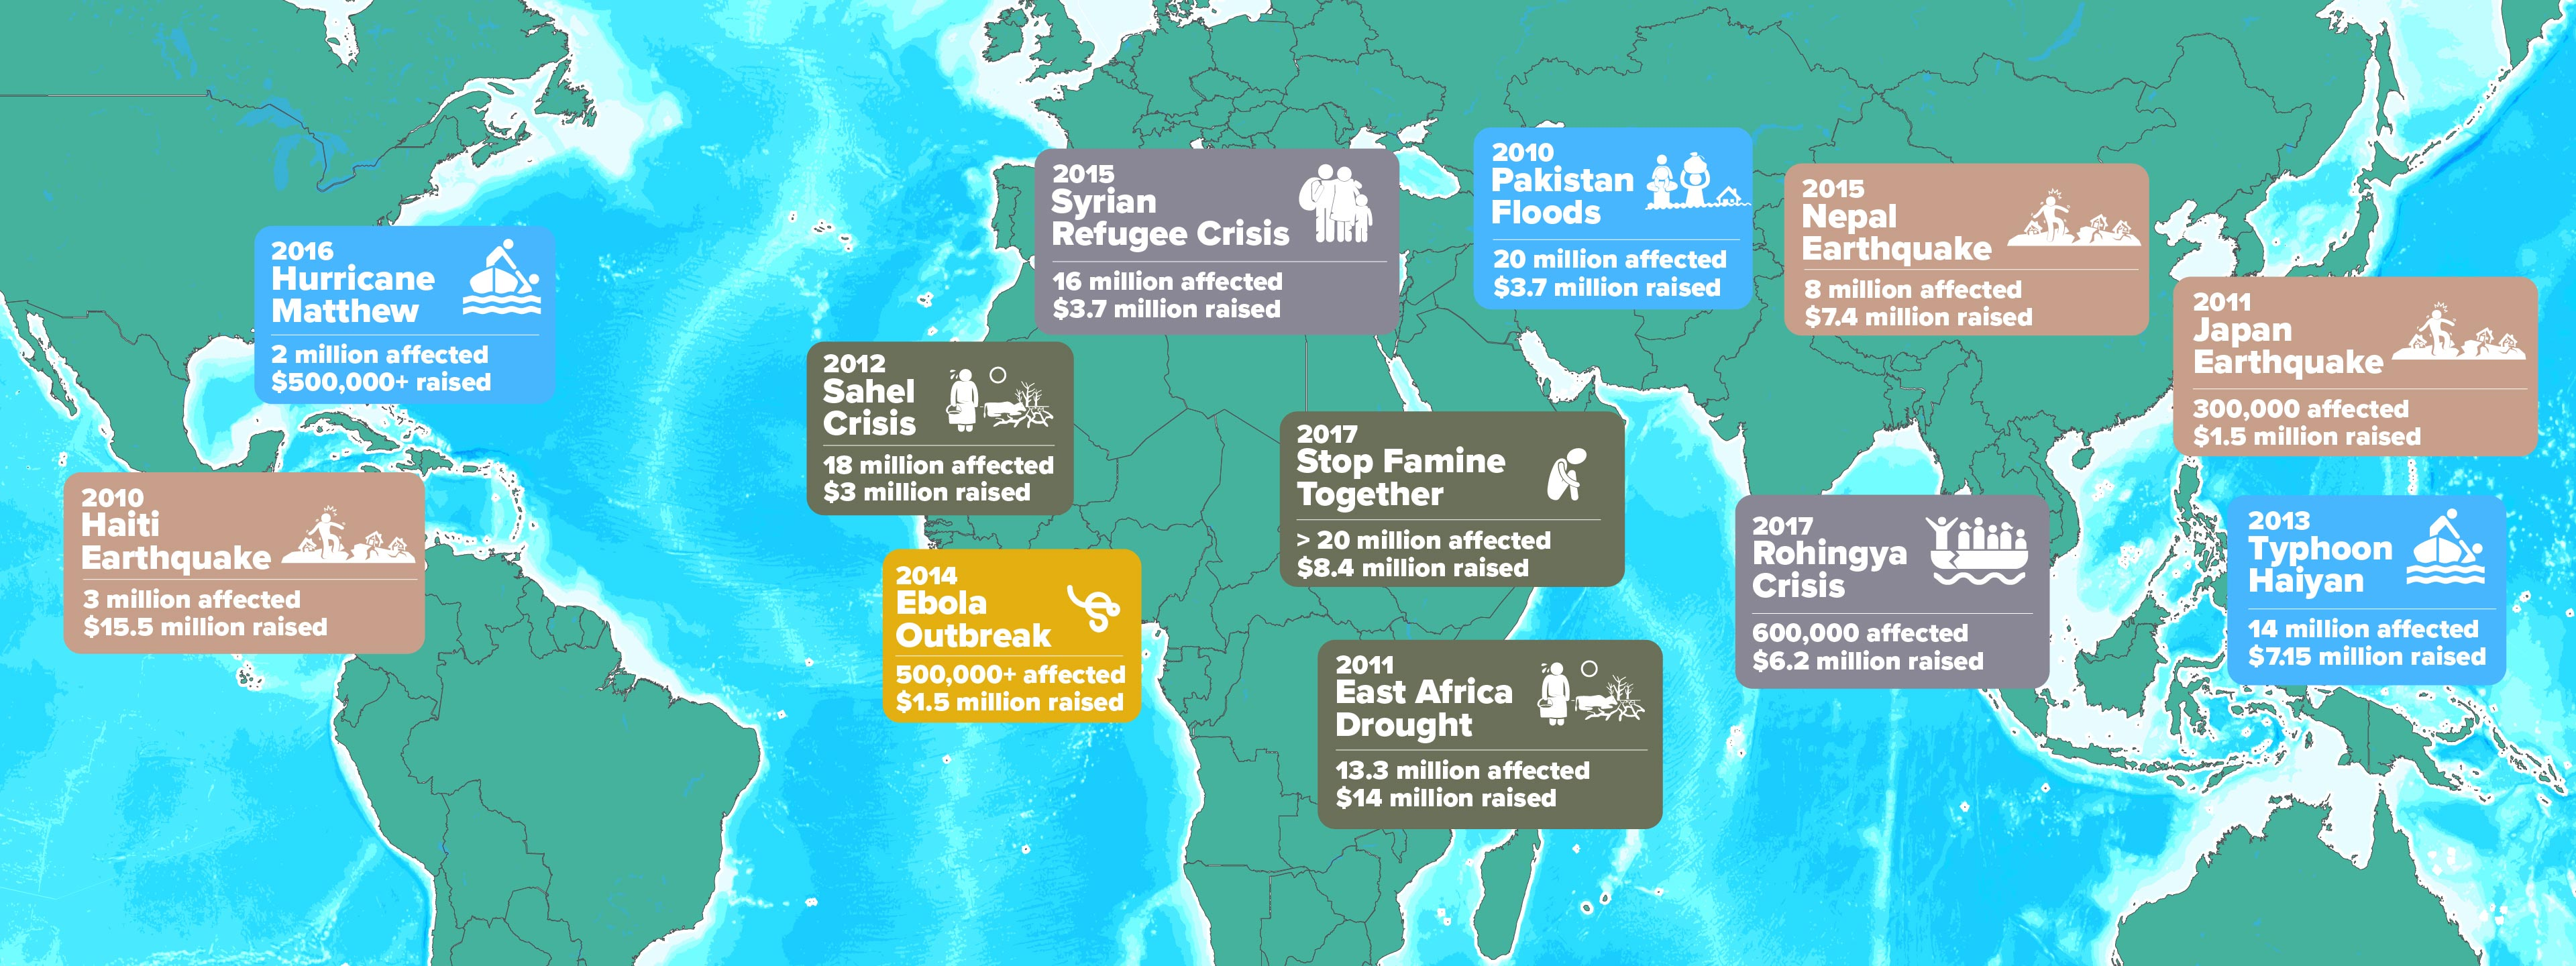 major emergencies map, humanitarian coalition